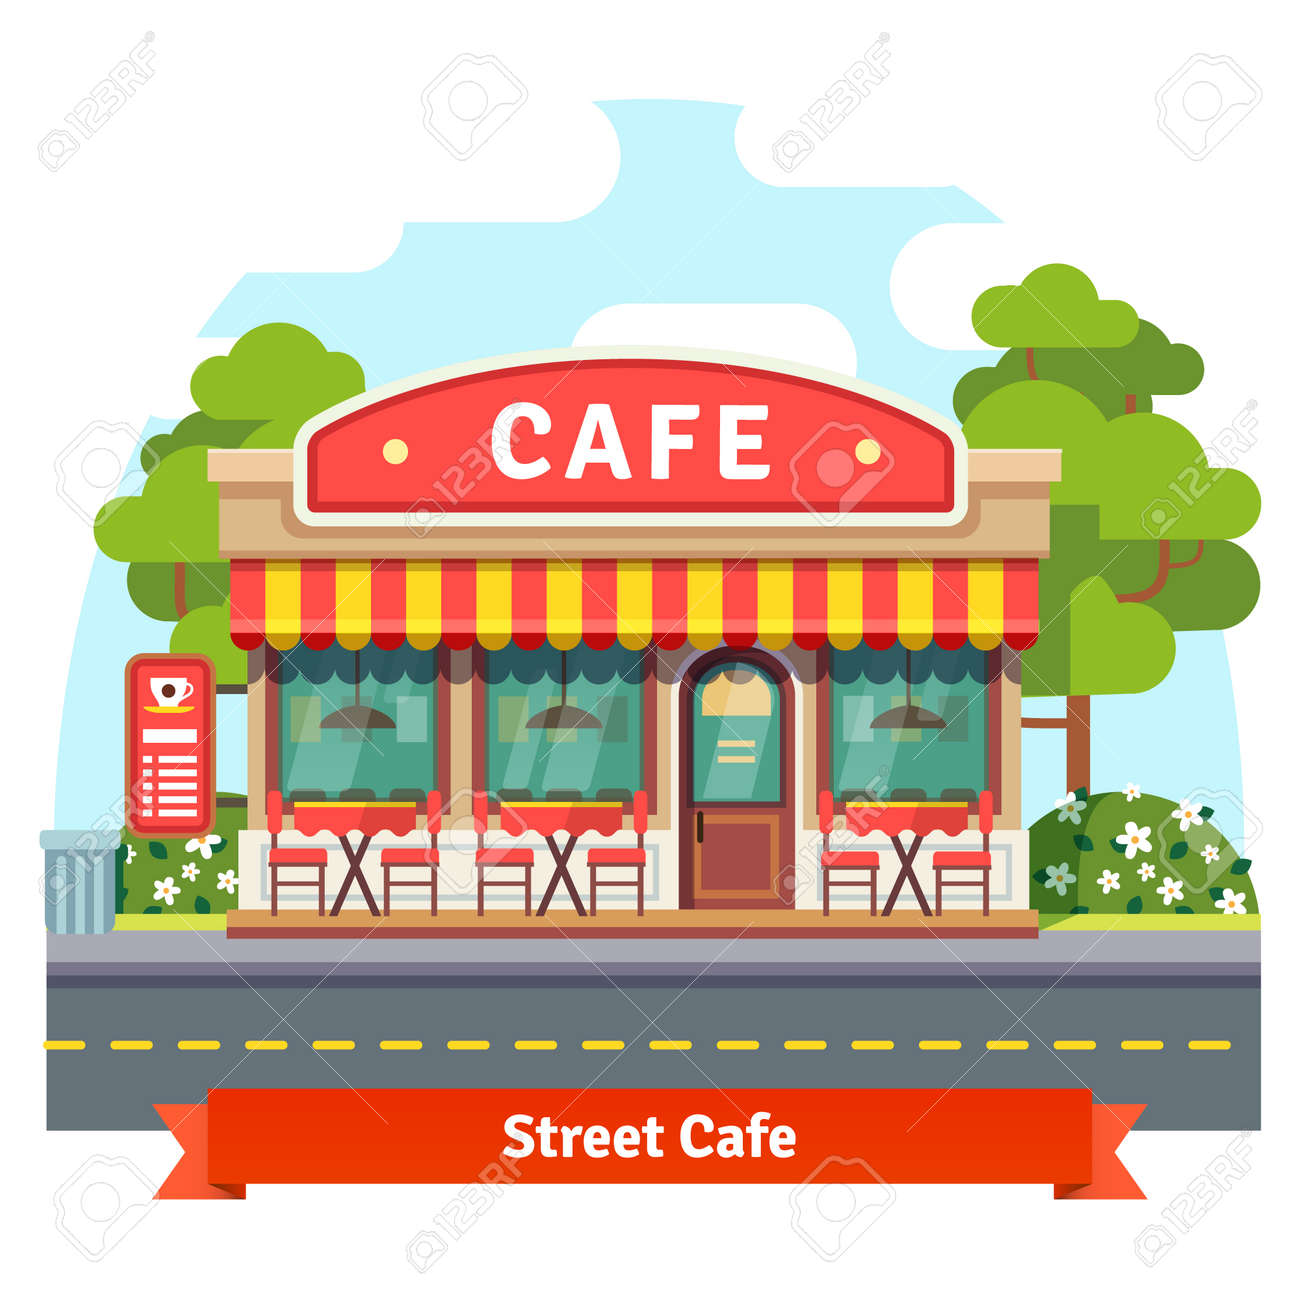 Building cartoon clipart restaurant building and restaurant building - Open Cafe Building Facade With Outdoor Street Chair Seats And Tables Flat Style Vector Illustration